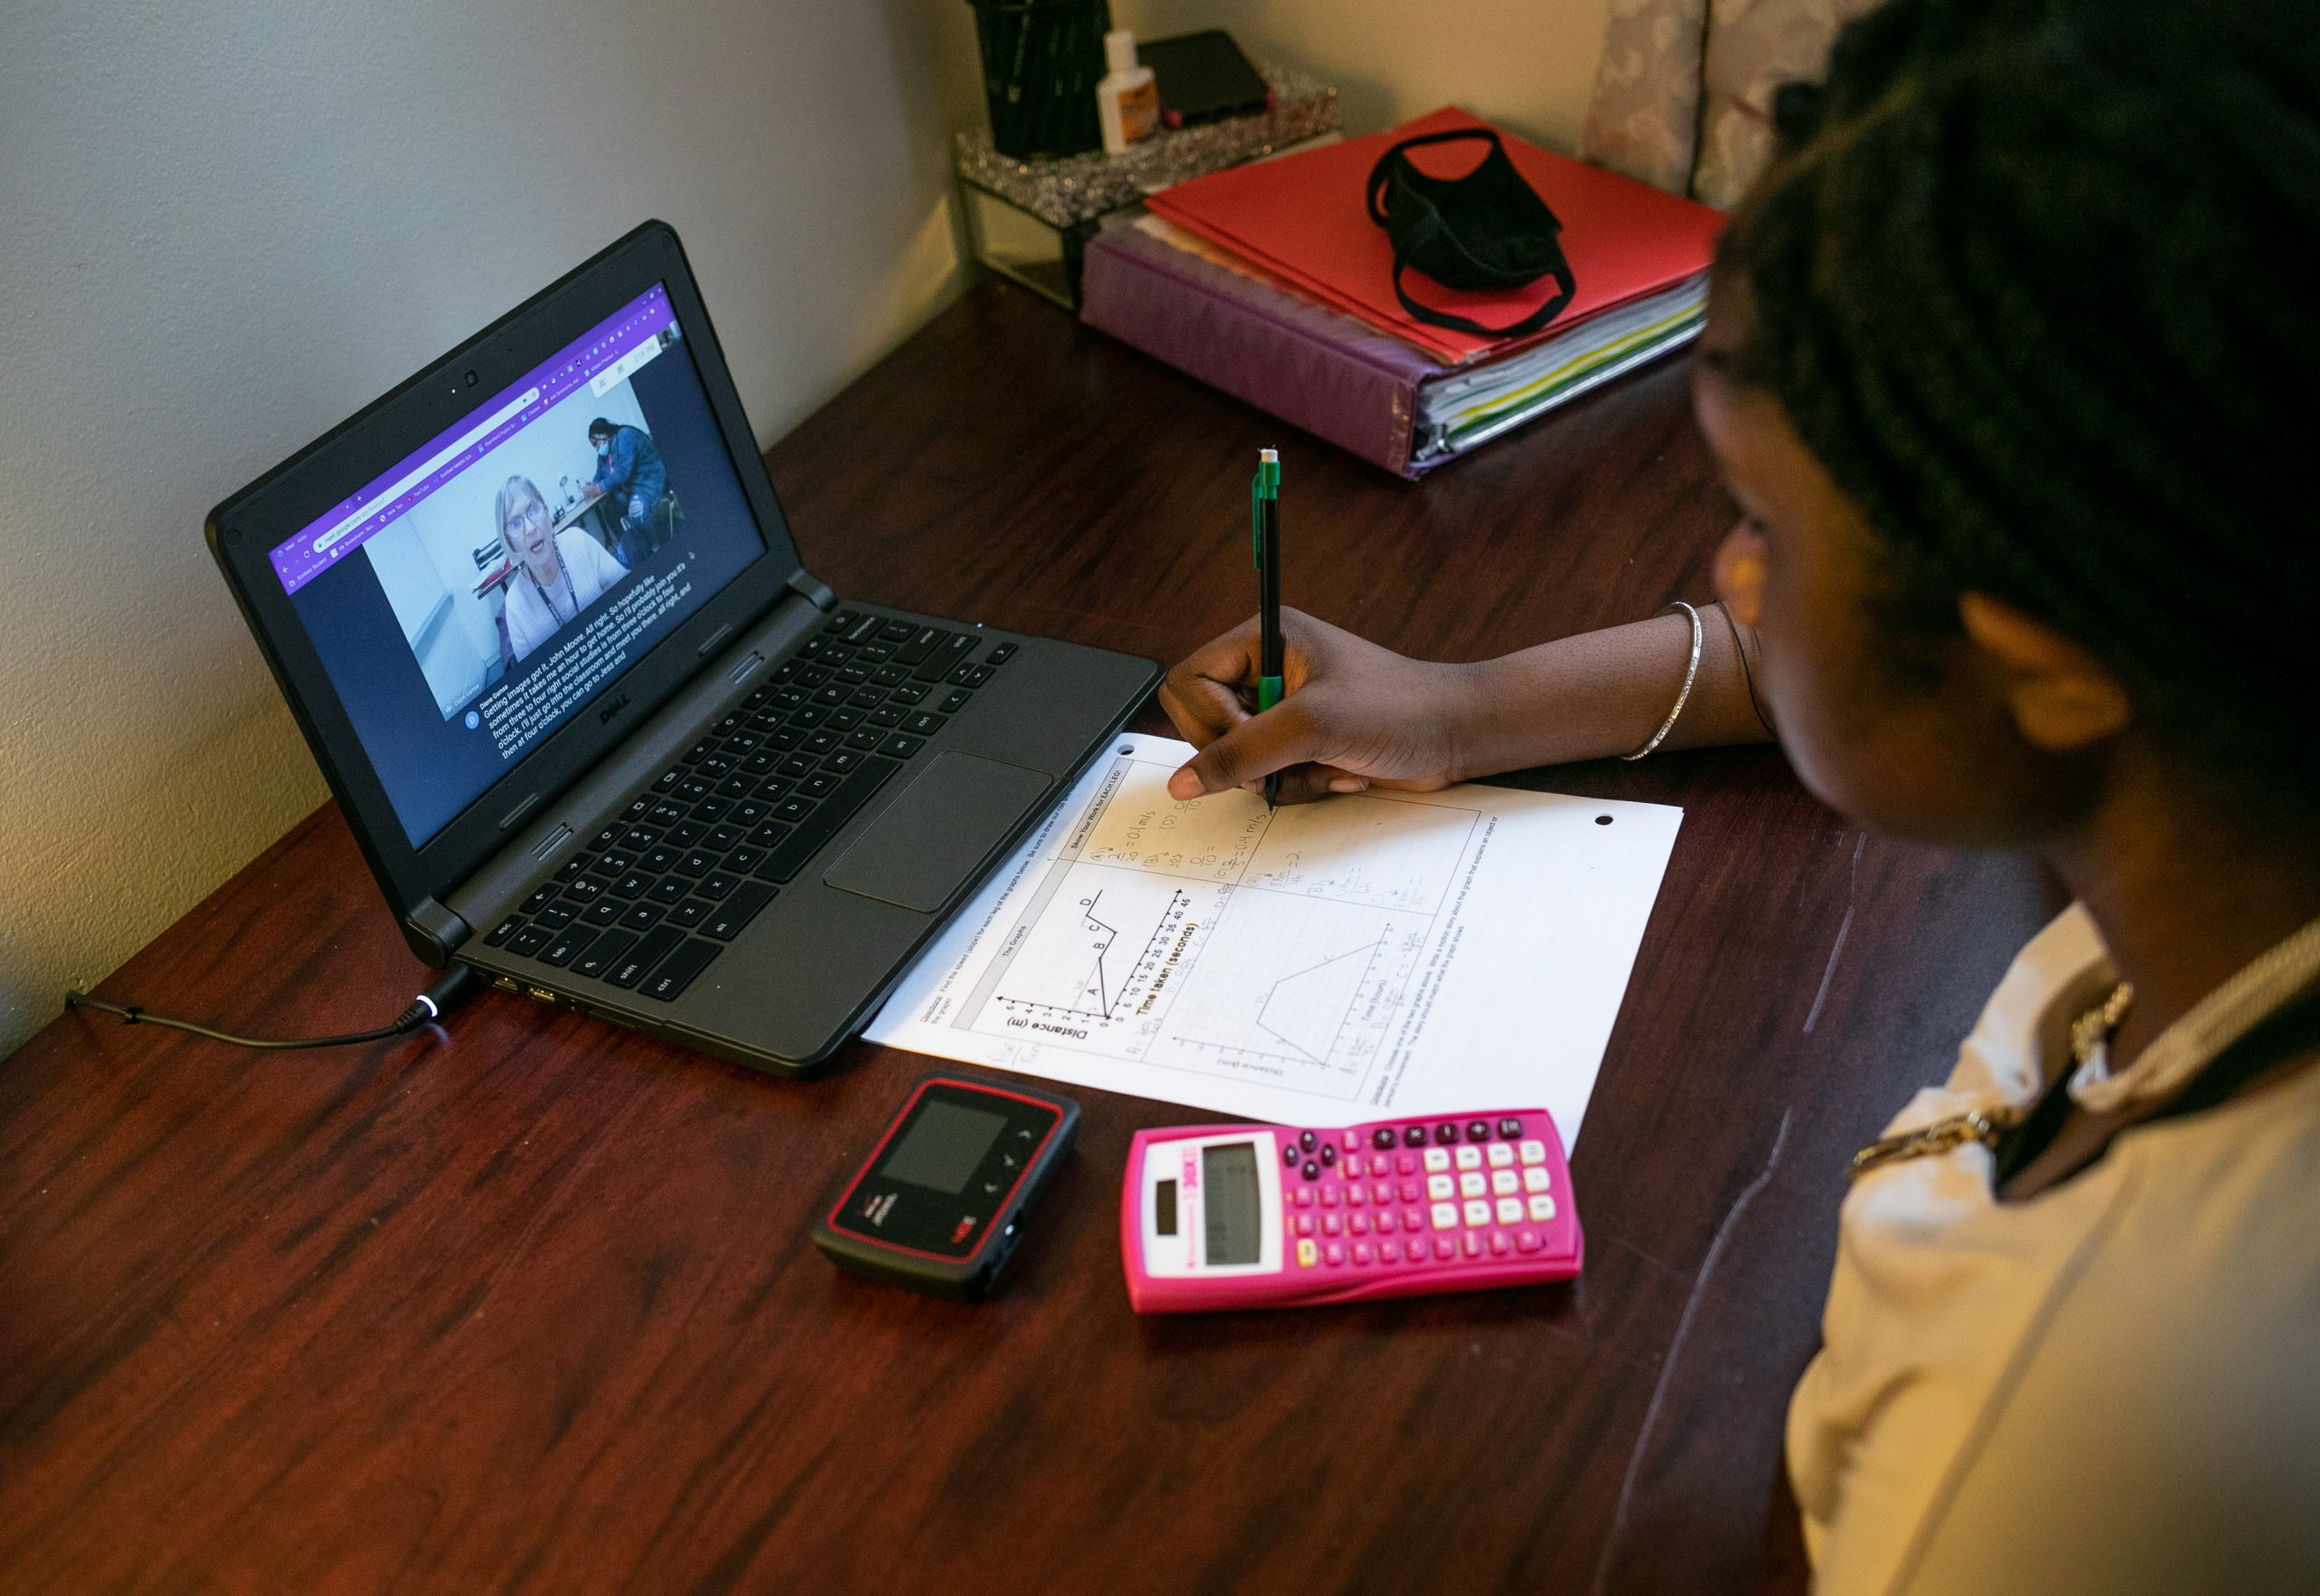 OPINION: Why Black families have found some benefits in distance learning